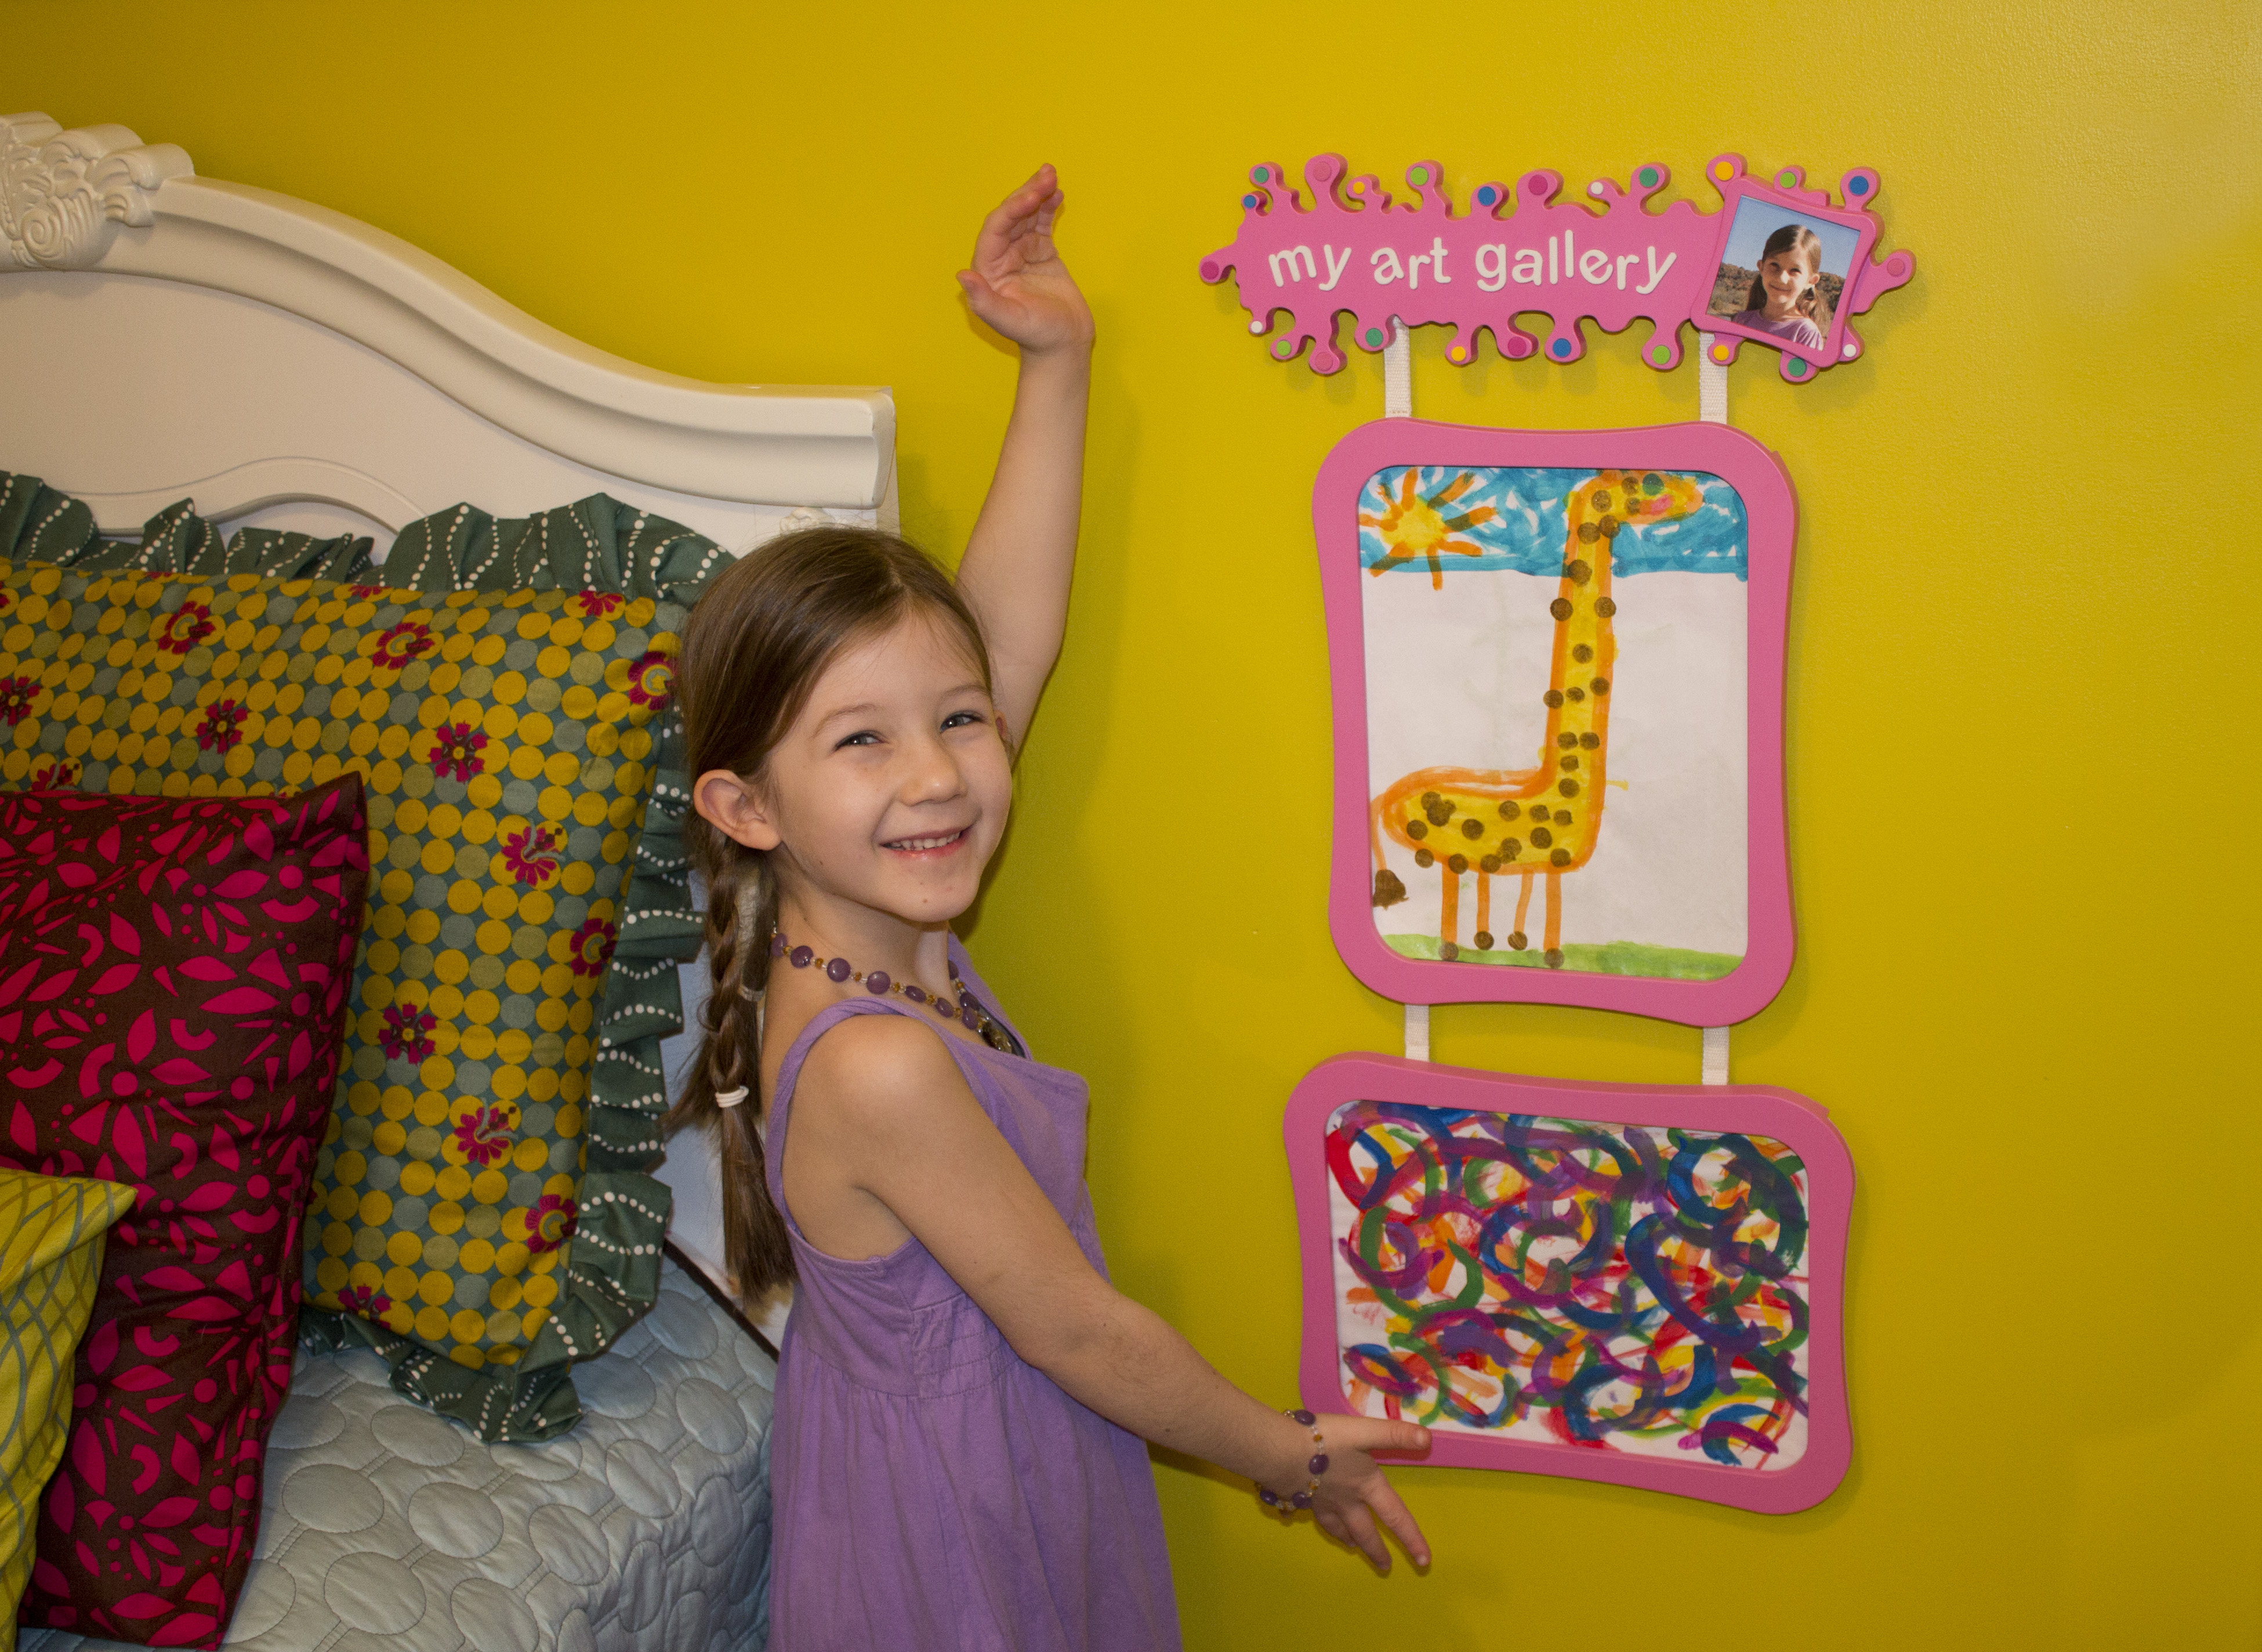 New approach in displaying kids art draws attention to for Art galleries that buy art